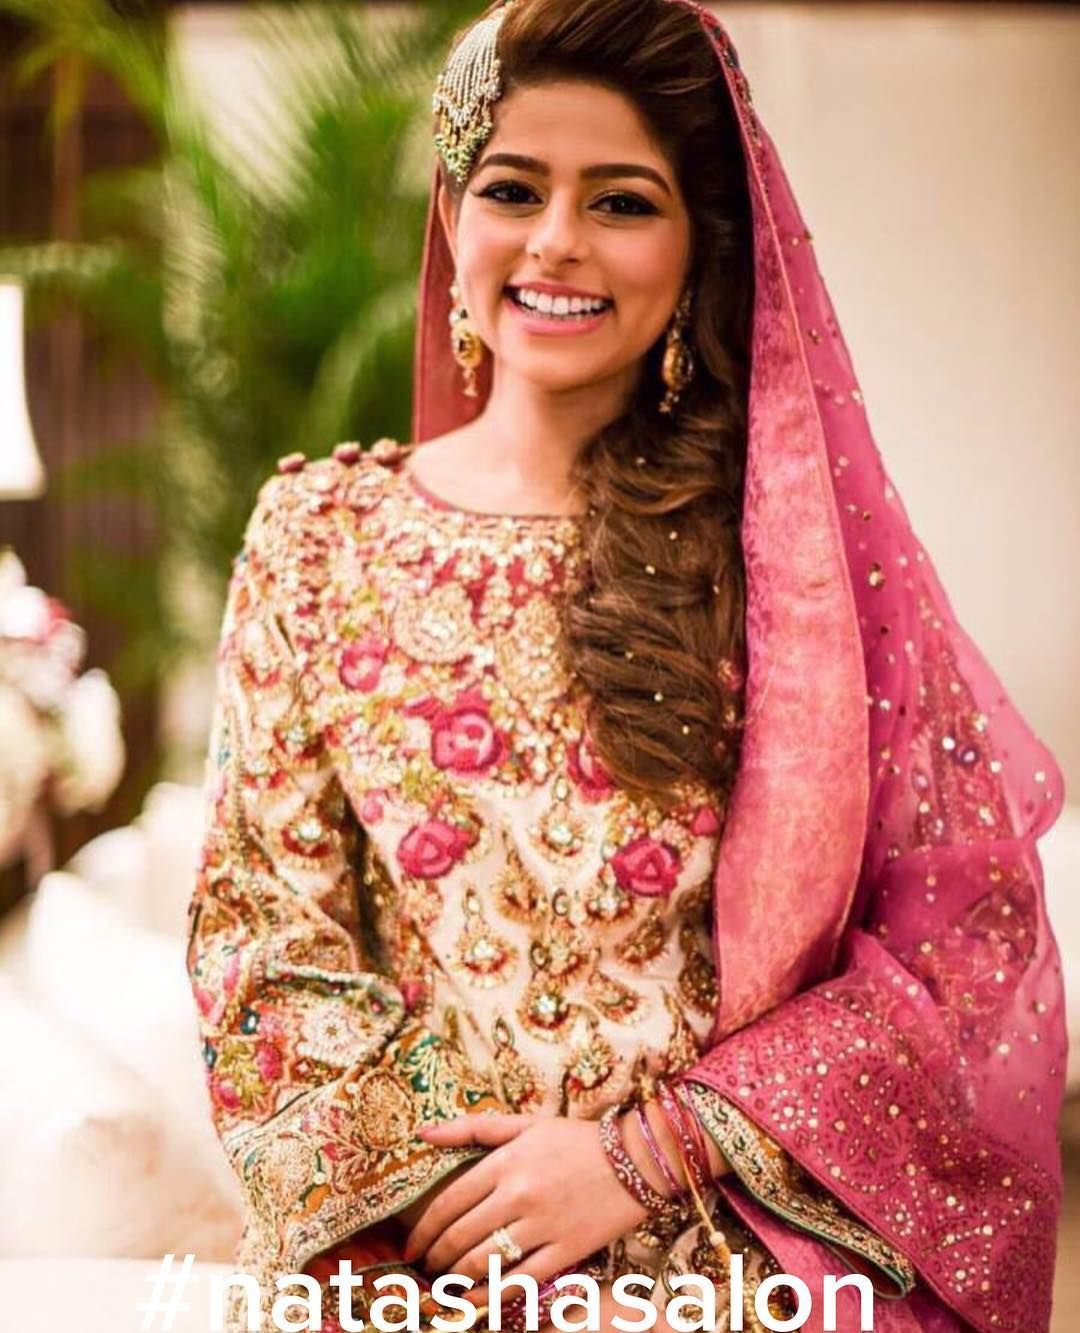 Love this gorgeous shot of the beautiful bareeha at her mehndi she